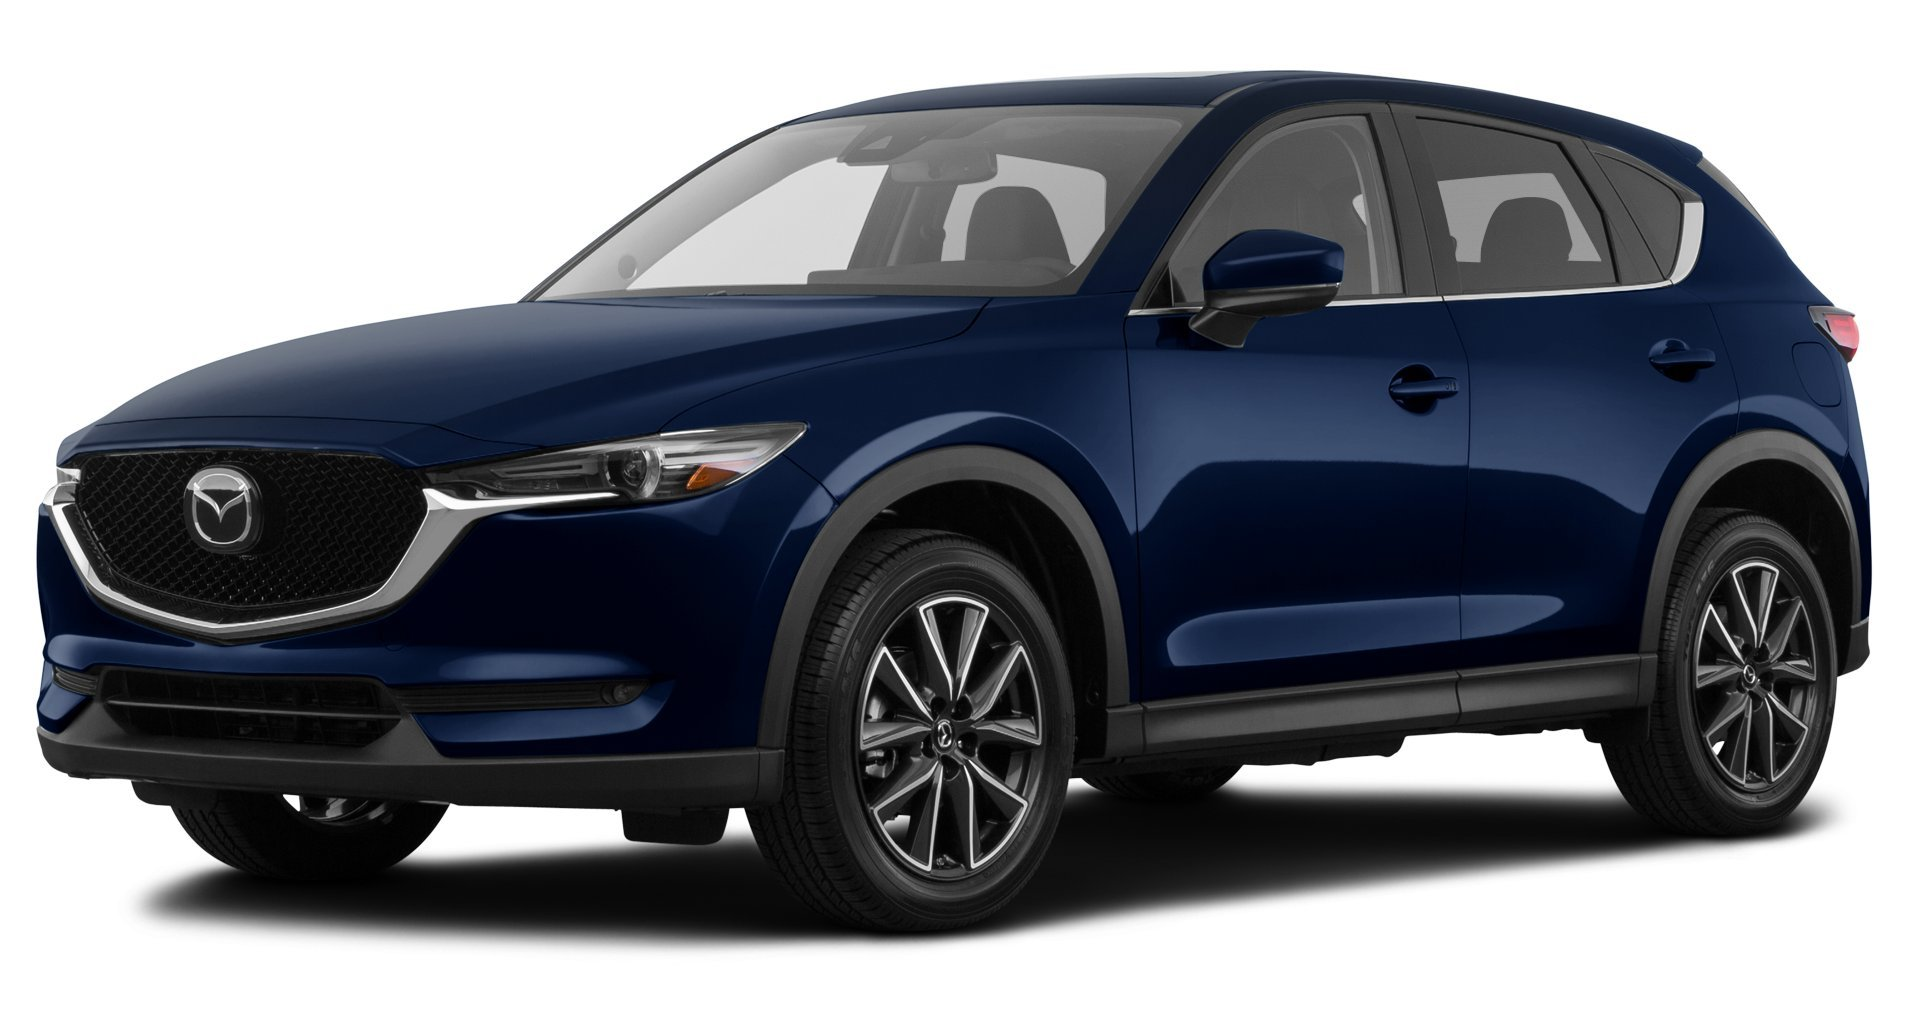 2018 mazda cx 5 reviews images and specs vehicles. Black Bedroom Furniture Sets. Home Design Ideas